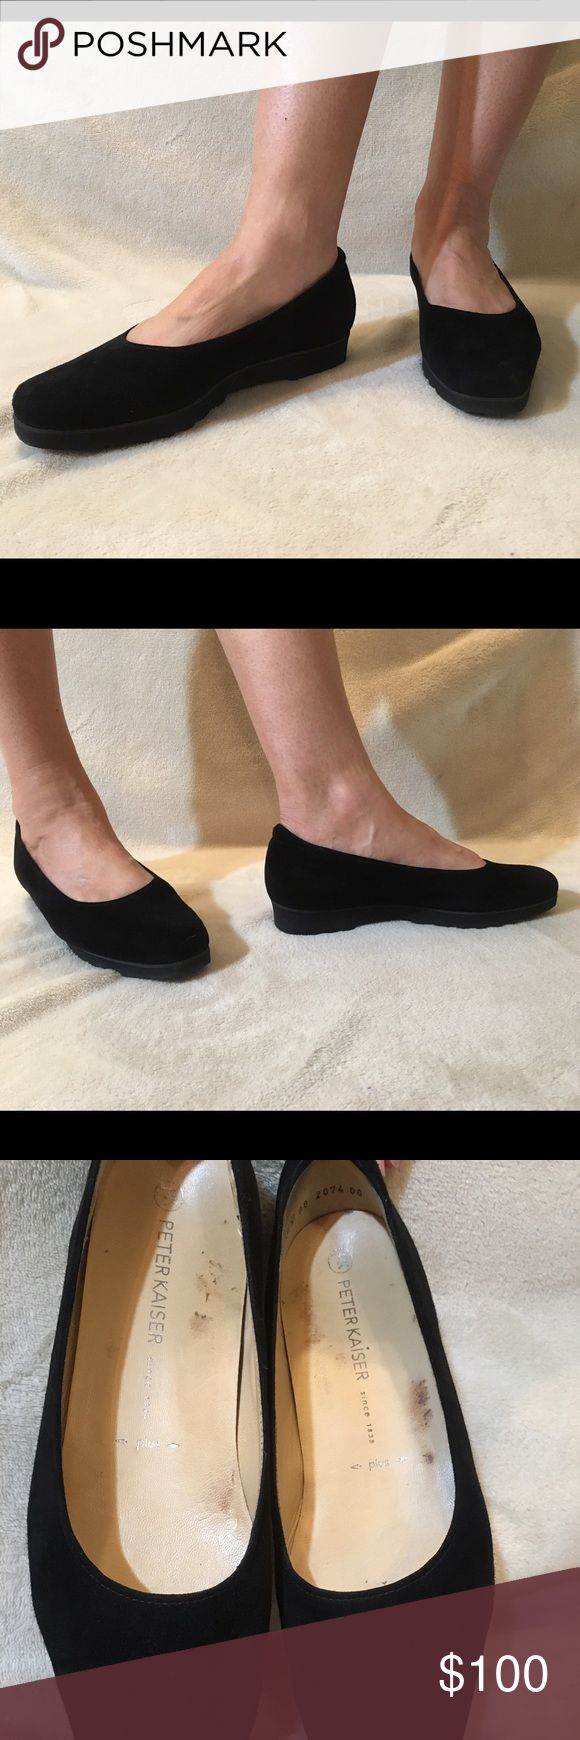 Peter Kaiser flats Super comfy black Peter Kaiser flats that will go with virtually anything. They say 6 1/2 but I am a 9 and they fit me. Peter Kaiser  Shoes Flats & Loafers